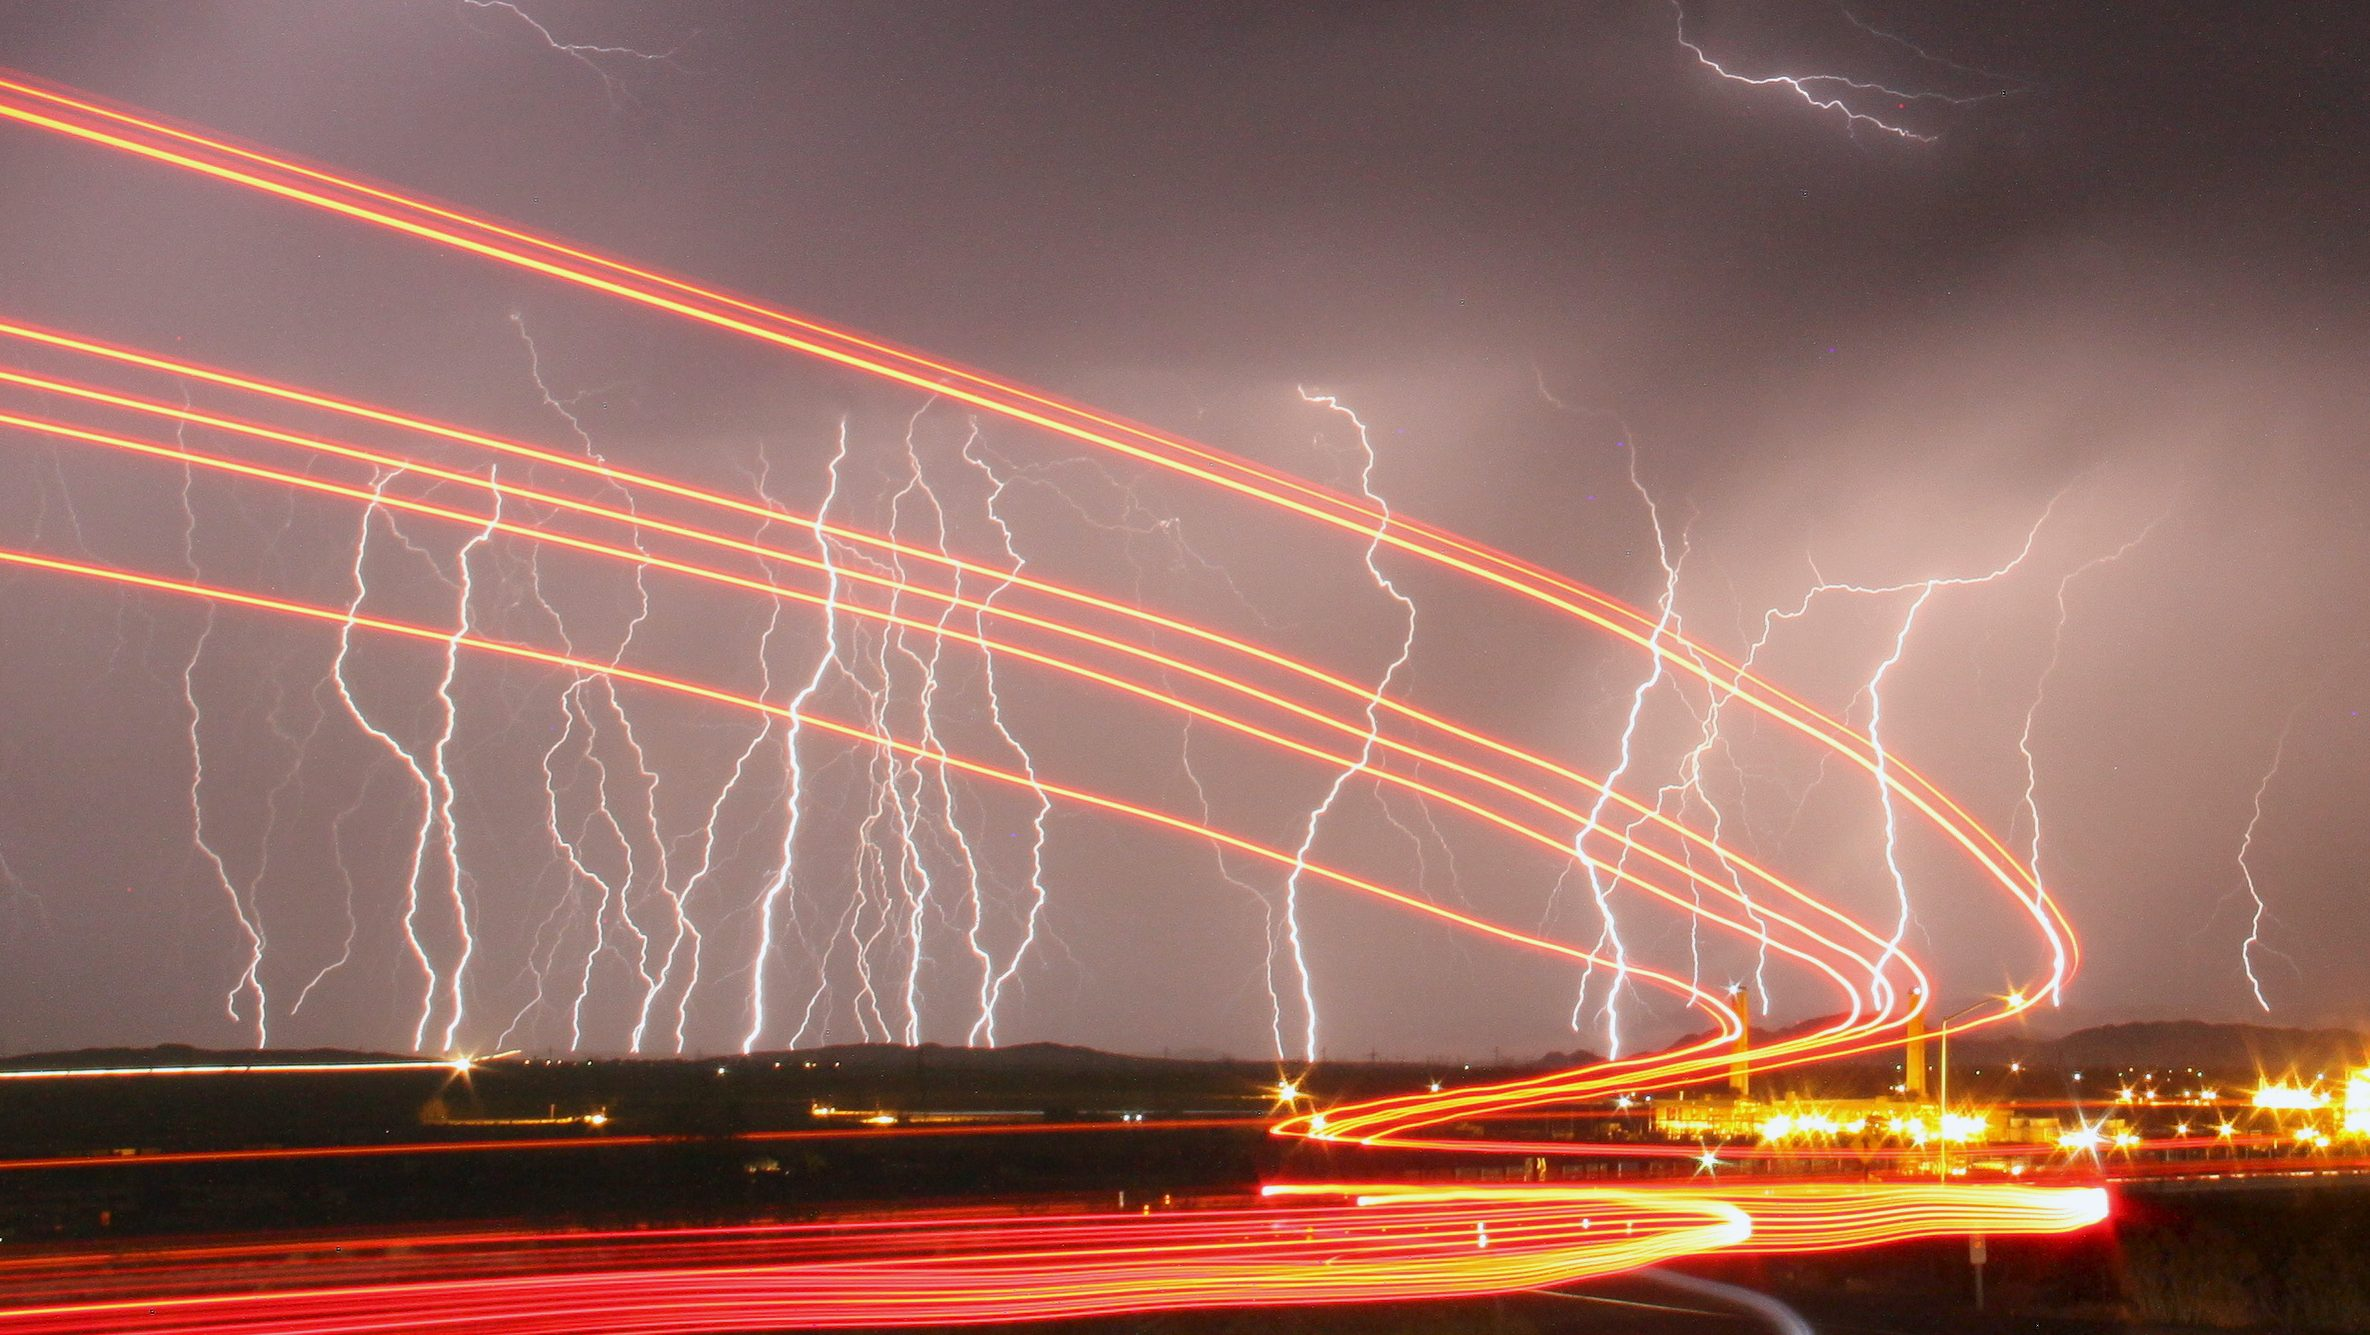 Mass lightning bolts light up night skies by the Daggett airport from monsoon storms passing over the high deserts early Wednesday, north of Barstow, California July 1, 2015. Picture taken using long exposure.